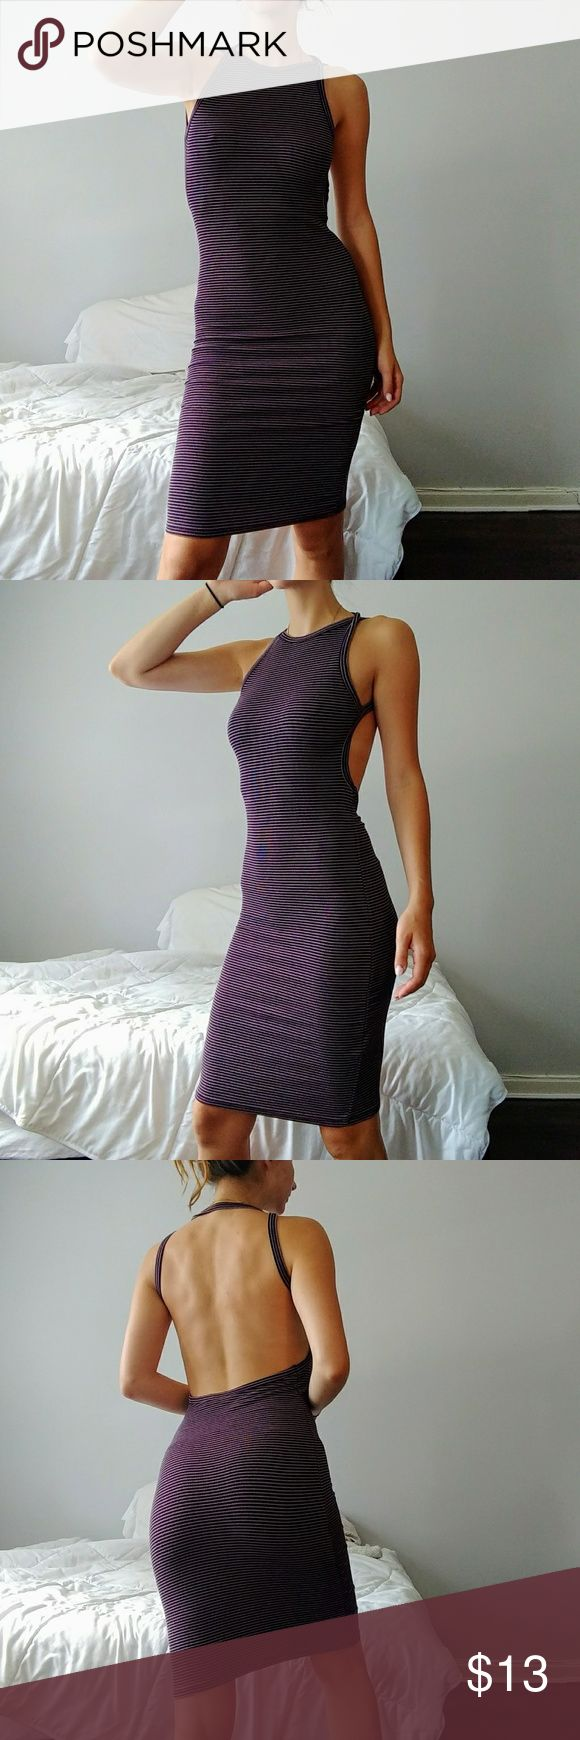 DONT ASK WHY PURPLE BODYCON DRESS Purple striped rib bodycon dress. Completely open back and sexy! Worn only once great condition. Great for going out and comfy. One size but would easily for a small or medium. Don't Ask Why Dresses Backless